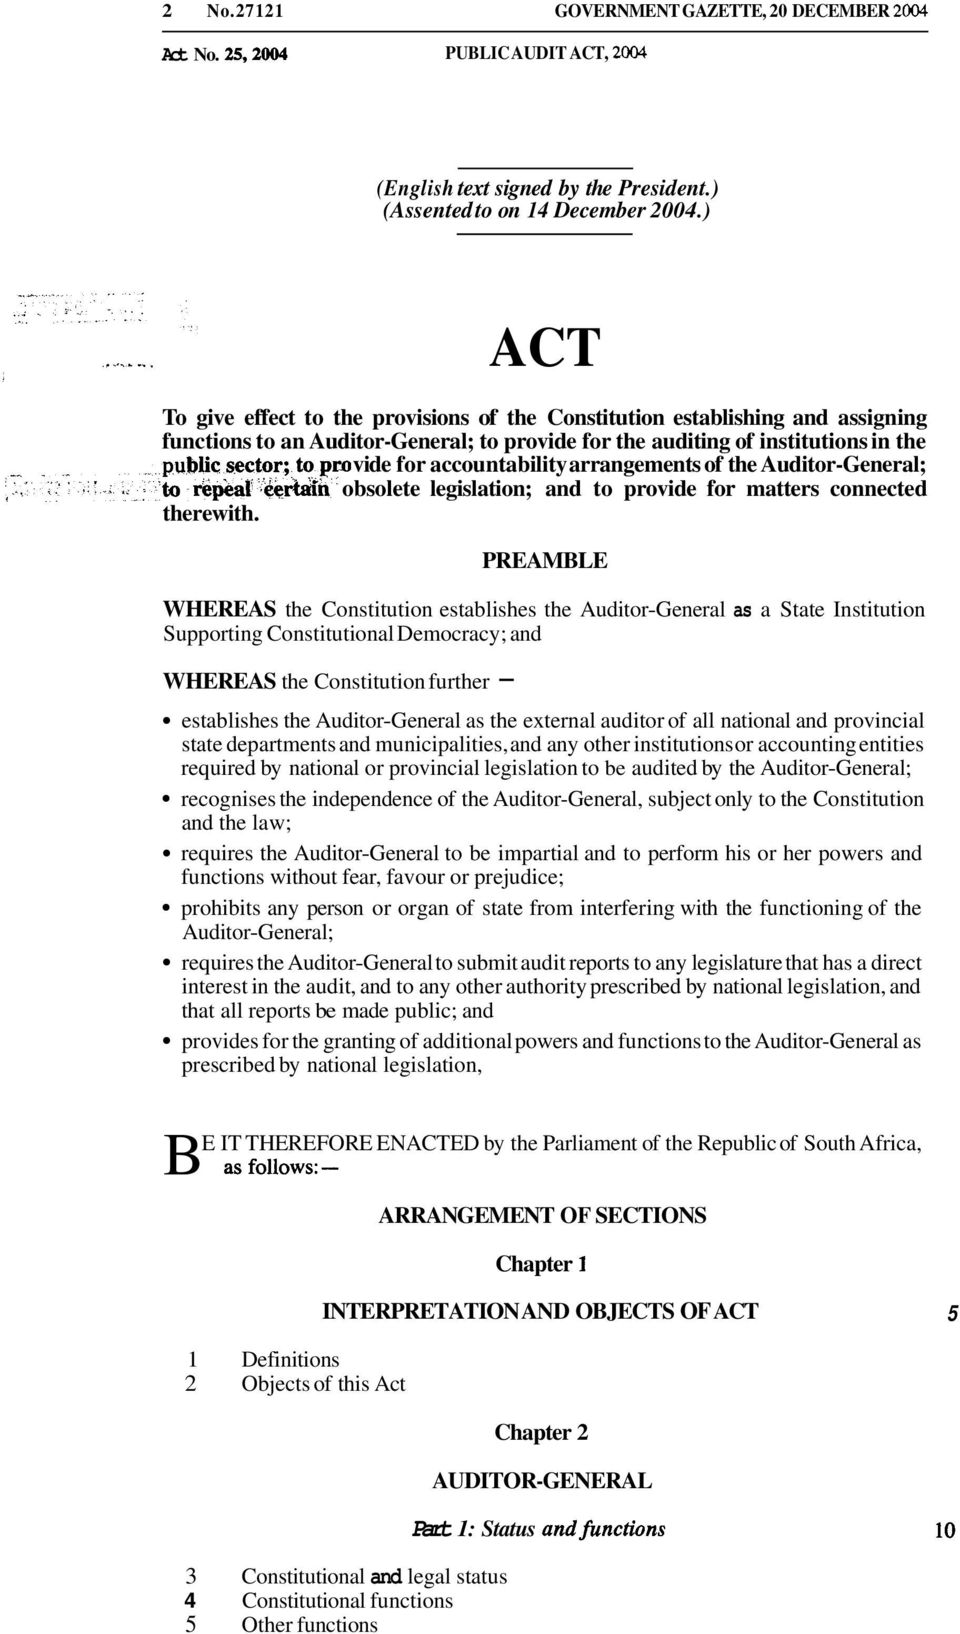 arrangements of the Auditor-General; to obsolete legislation; and to provide for matters connected therewith.